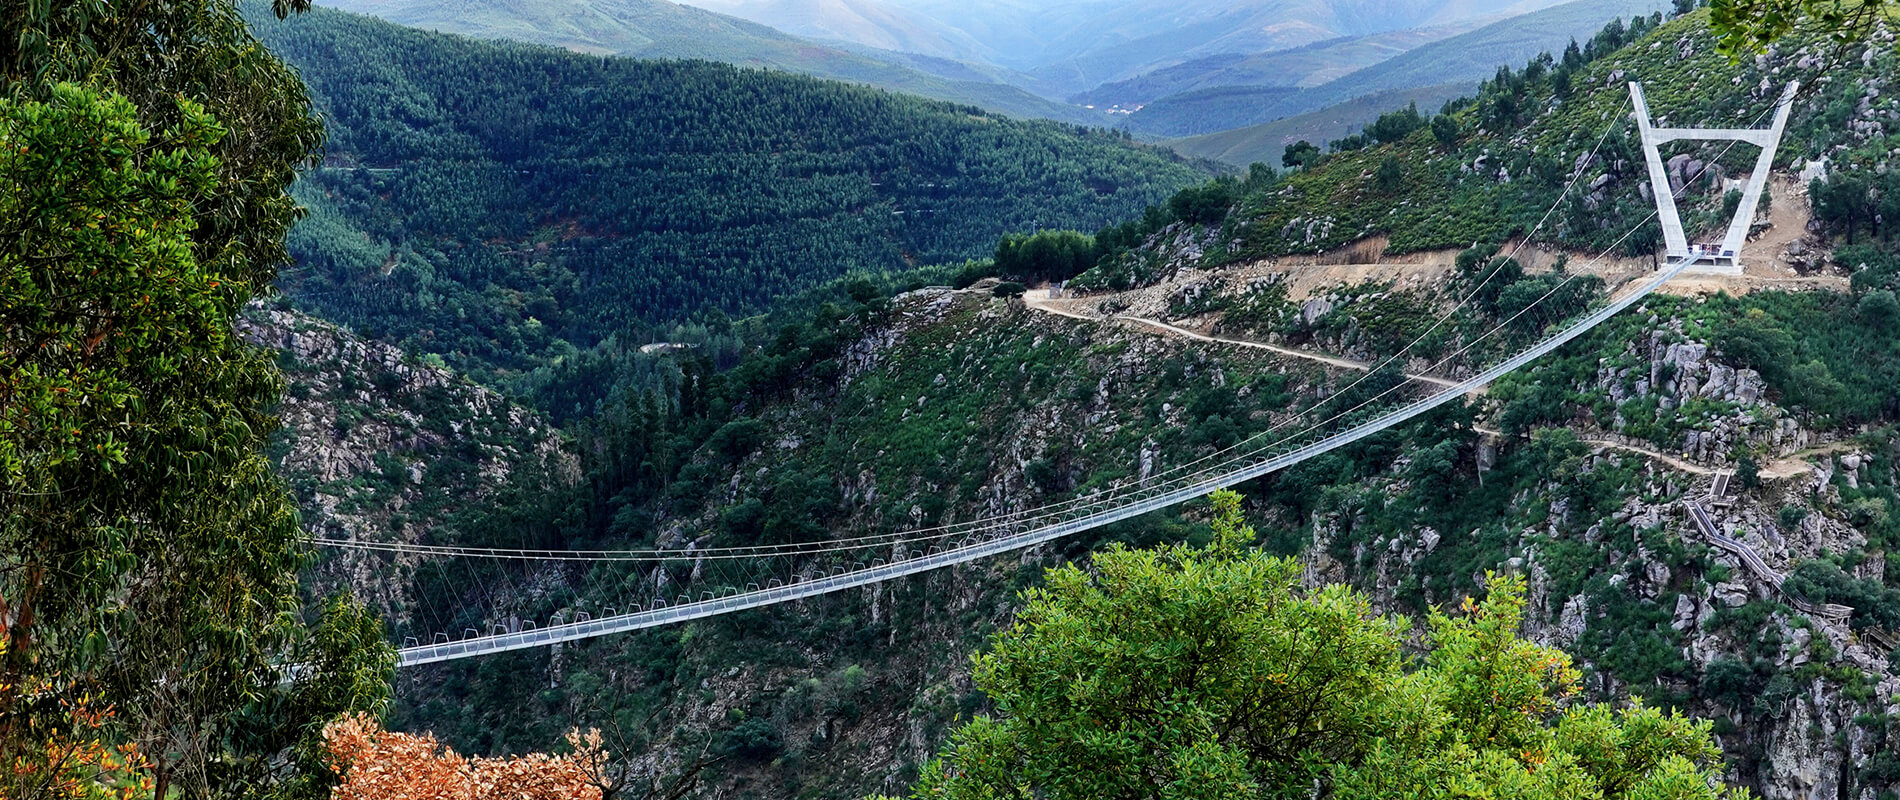 516 Arouca, the longest pedestrian suspension bridge in the world